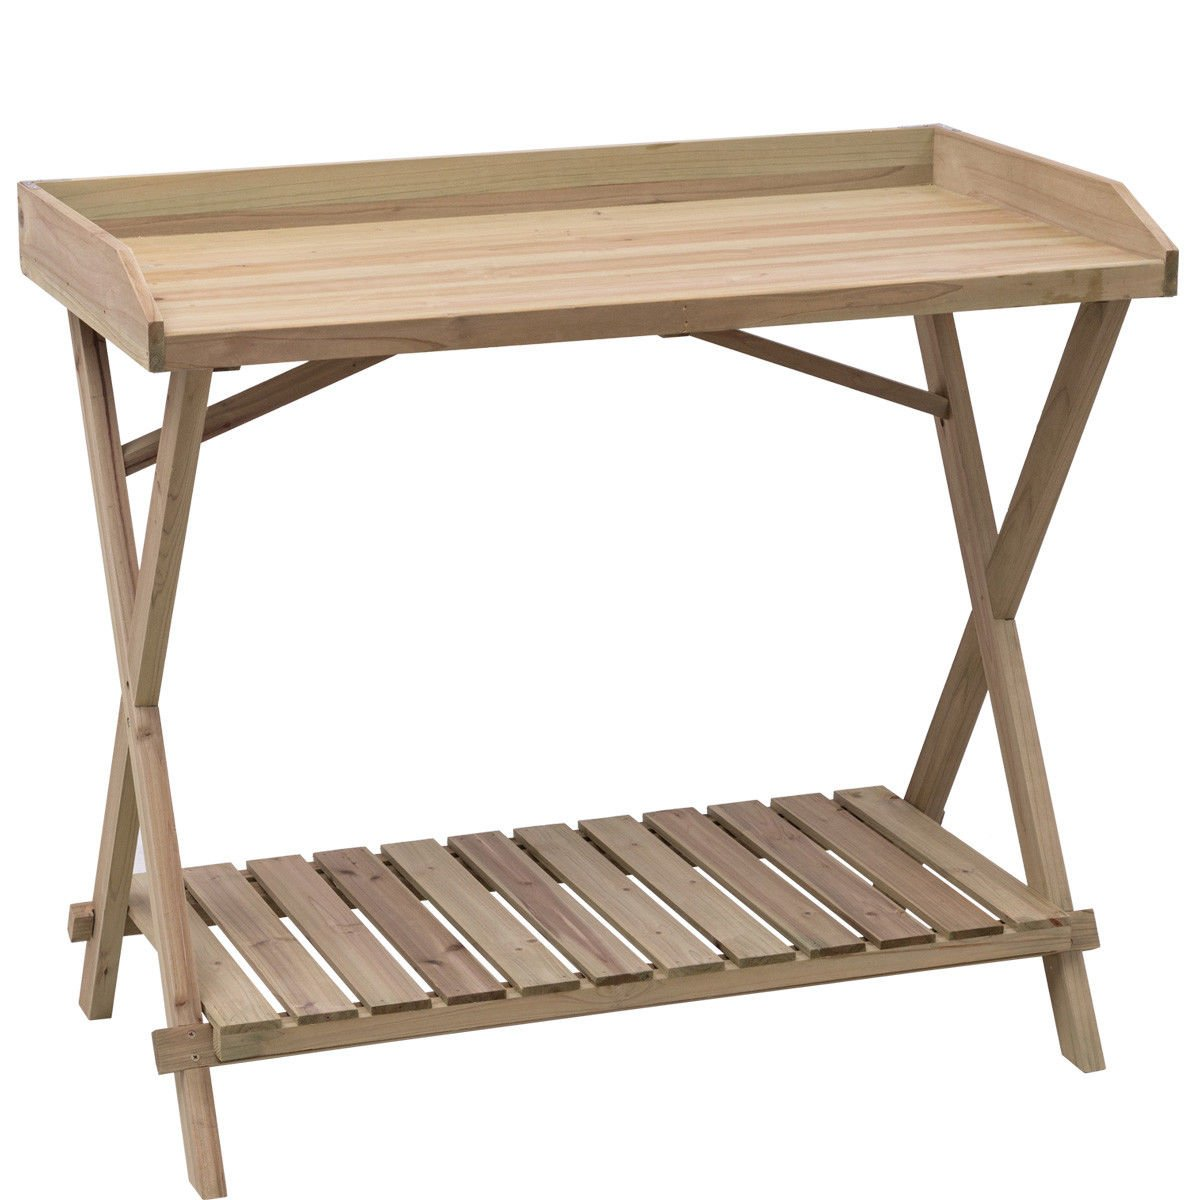 billionese Table Wood Potting Bench Console Serving Workstation Shelf Display Patio Outdoor